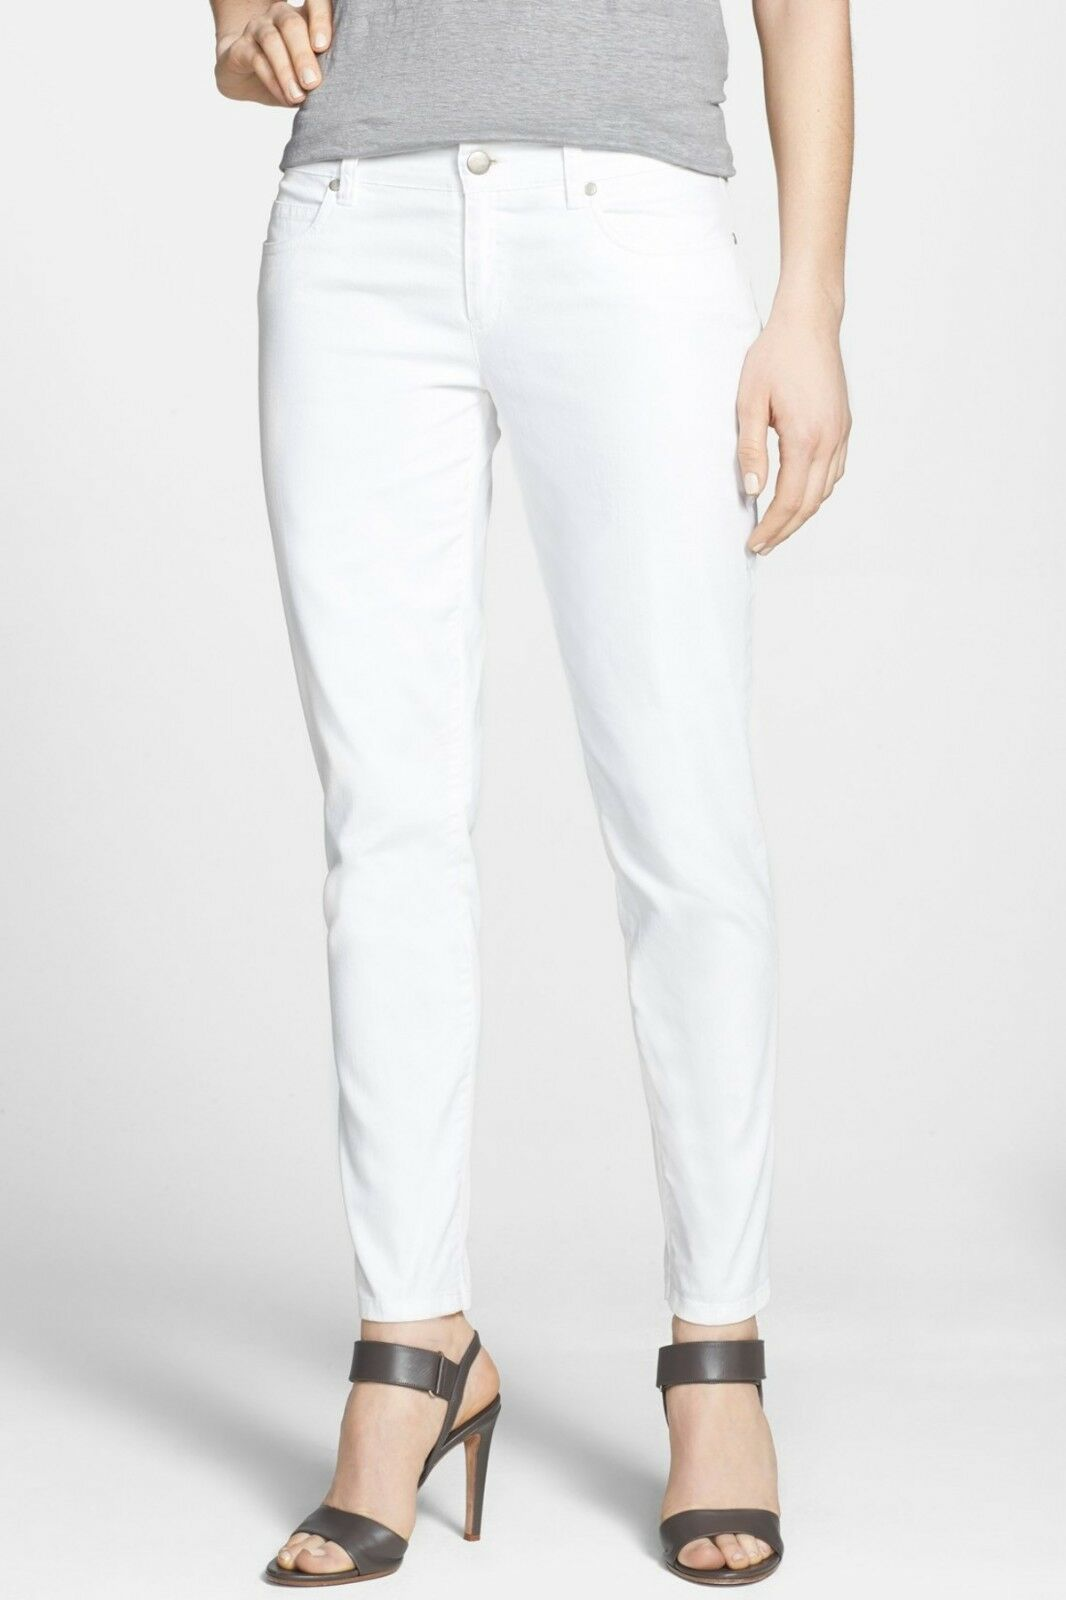 NWT Eileen Fisher White Organic Cotton Stretch Denim Ankle Skinny Jeans Size 14